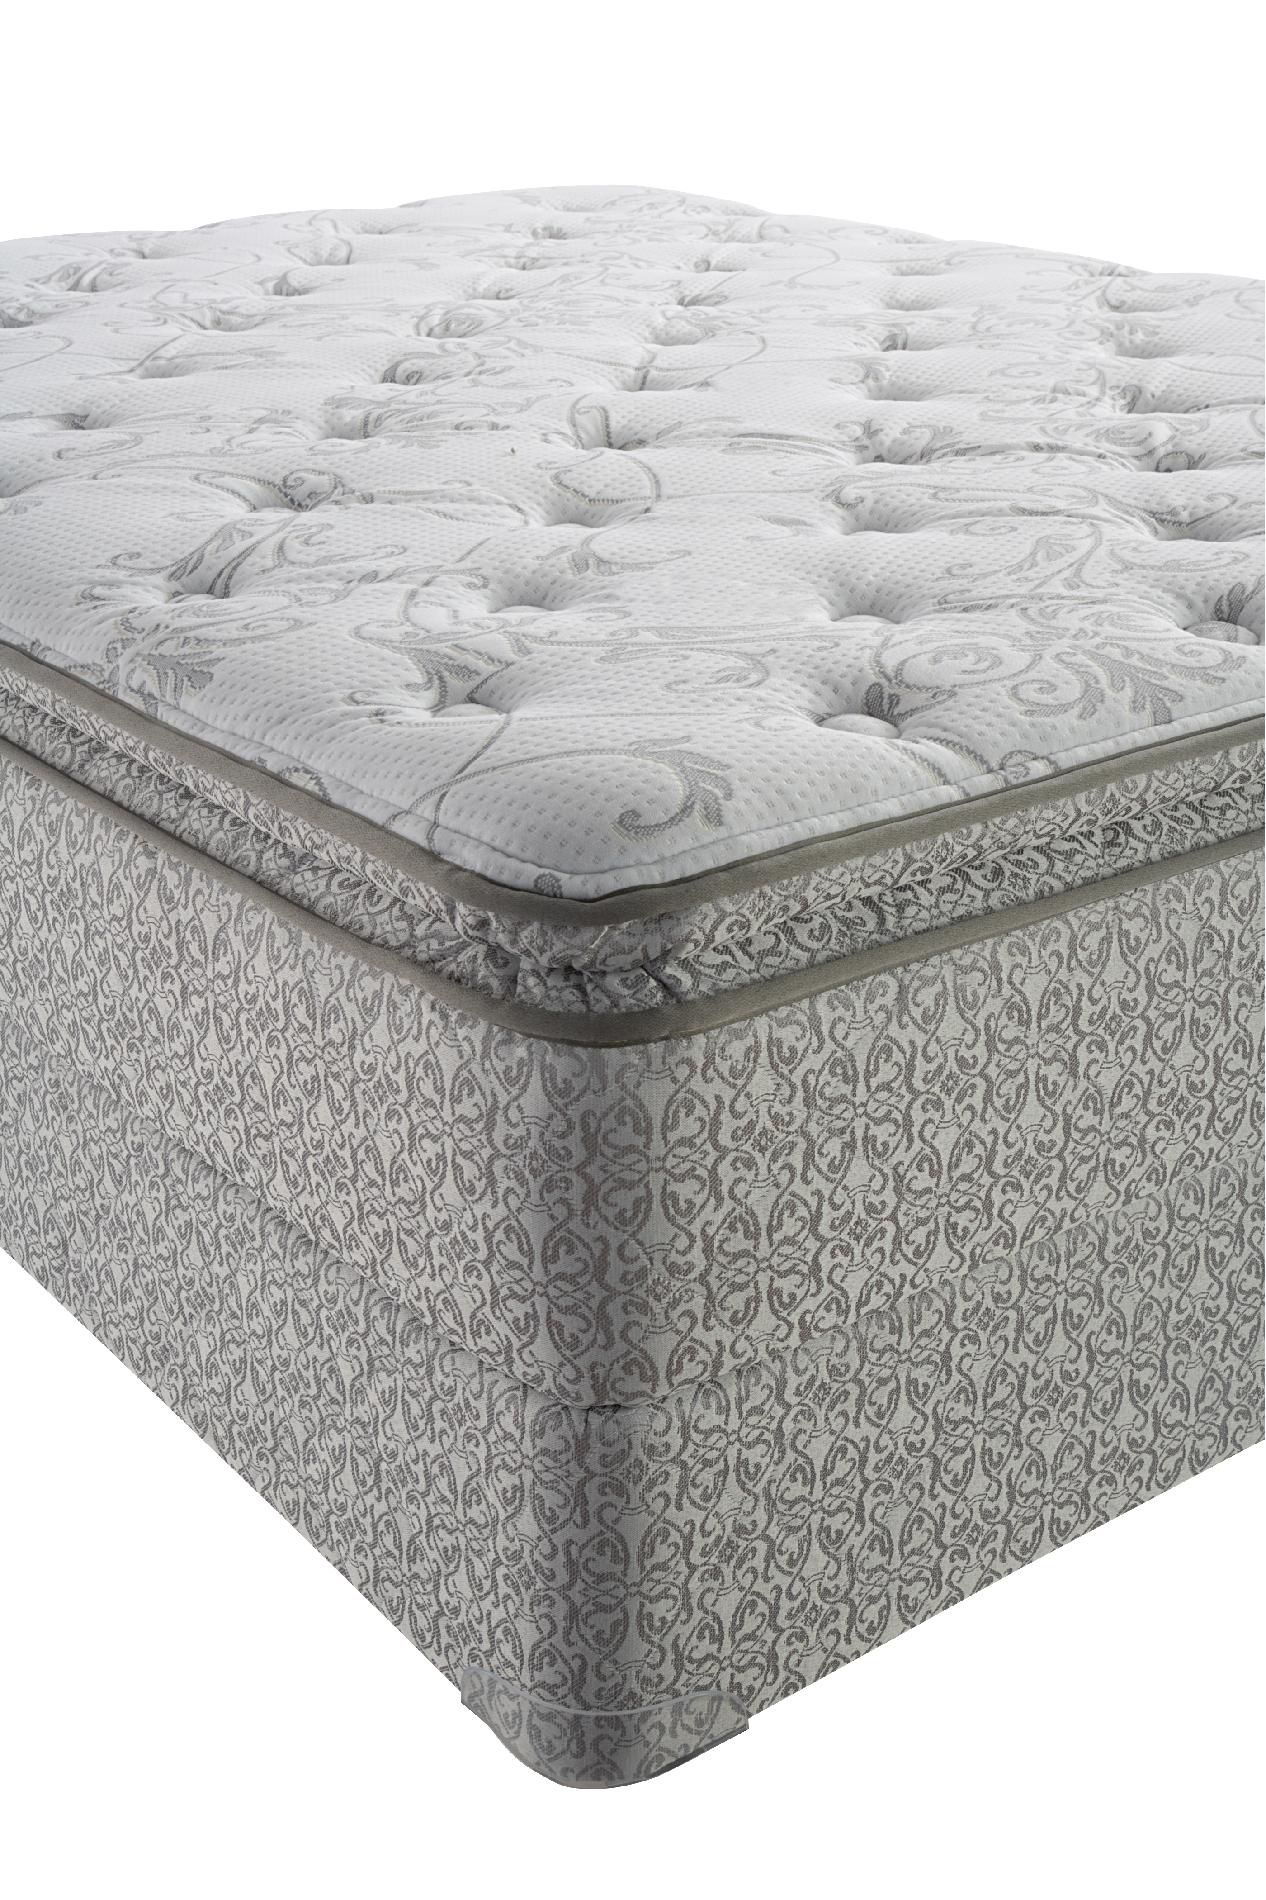 Delphi Select Plush Euro Pillowtop Cal King Mattress Only